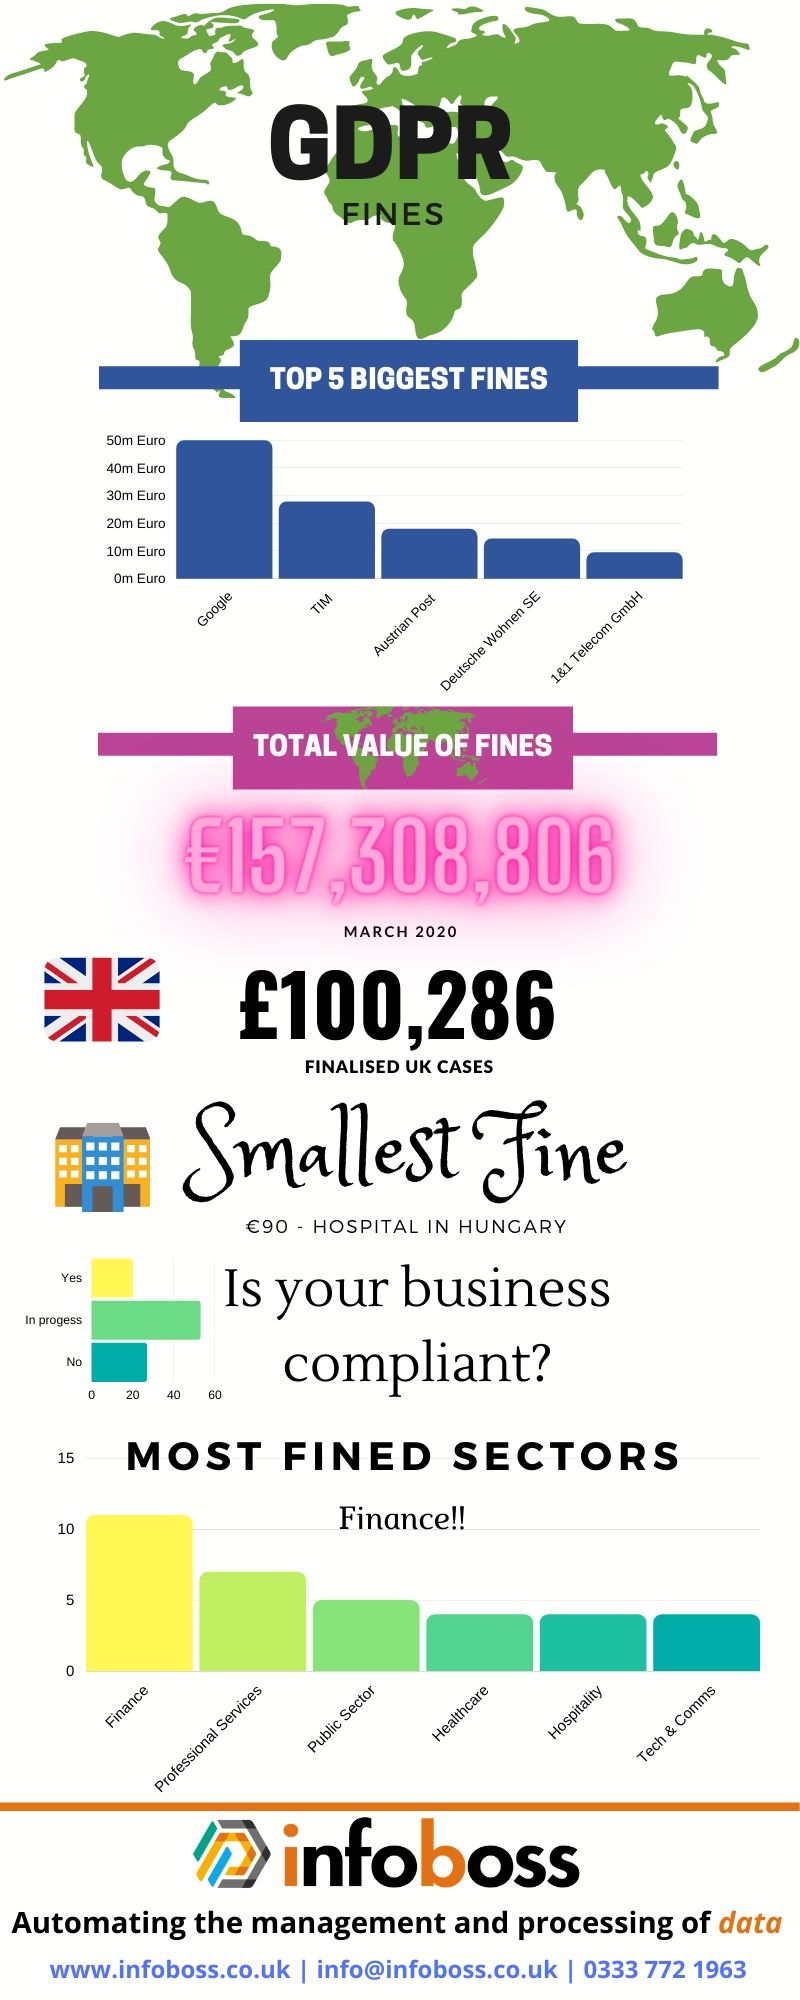 GDPR fines infographic